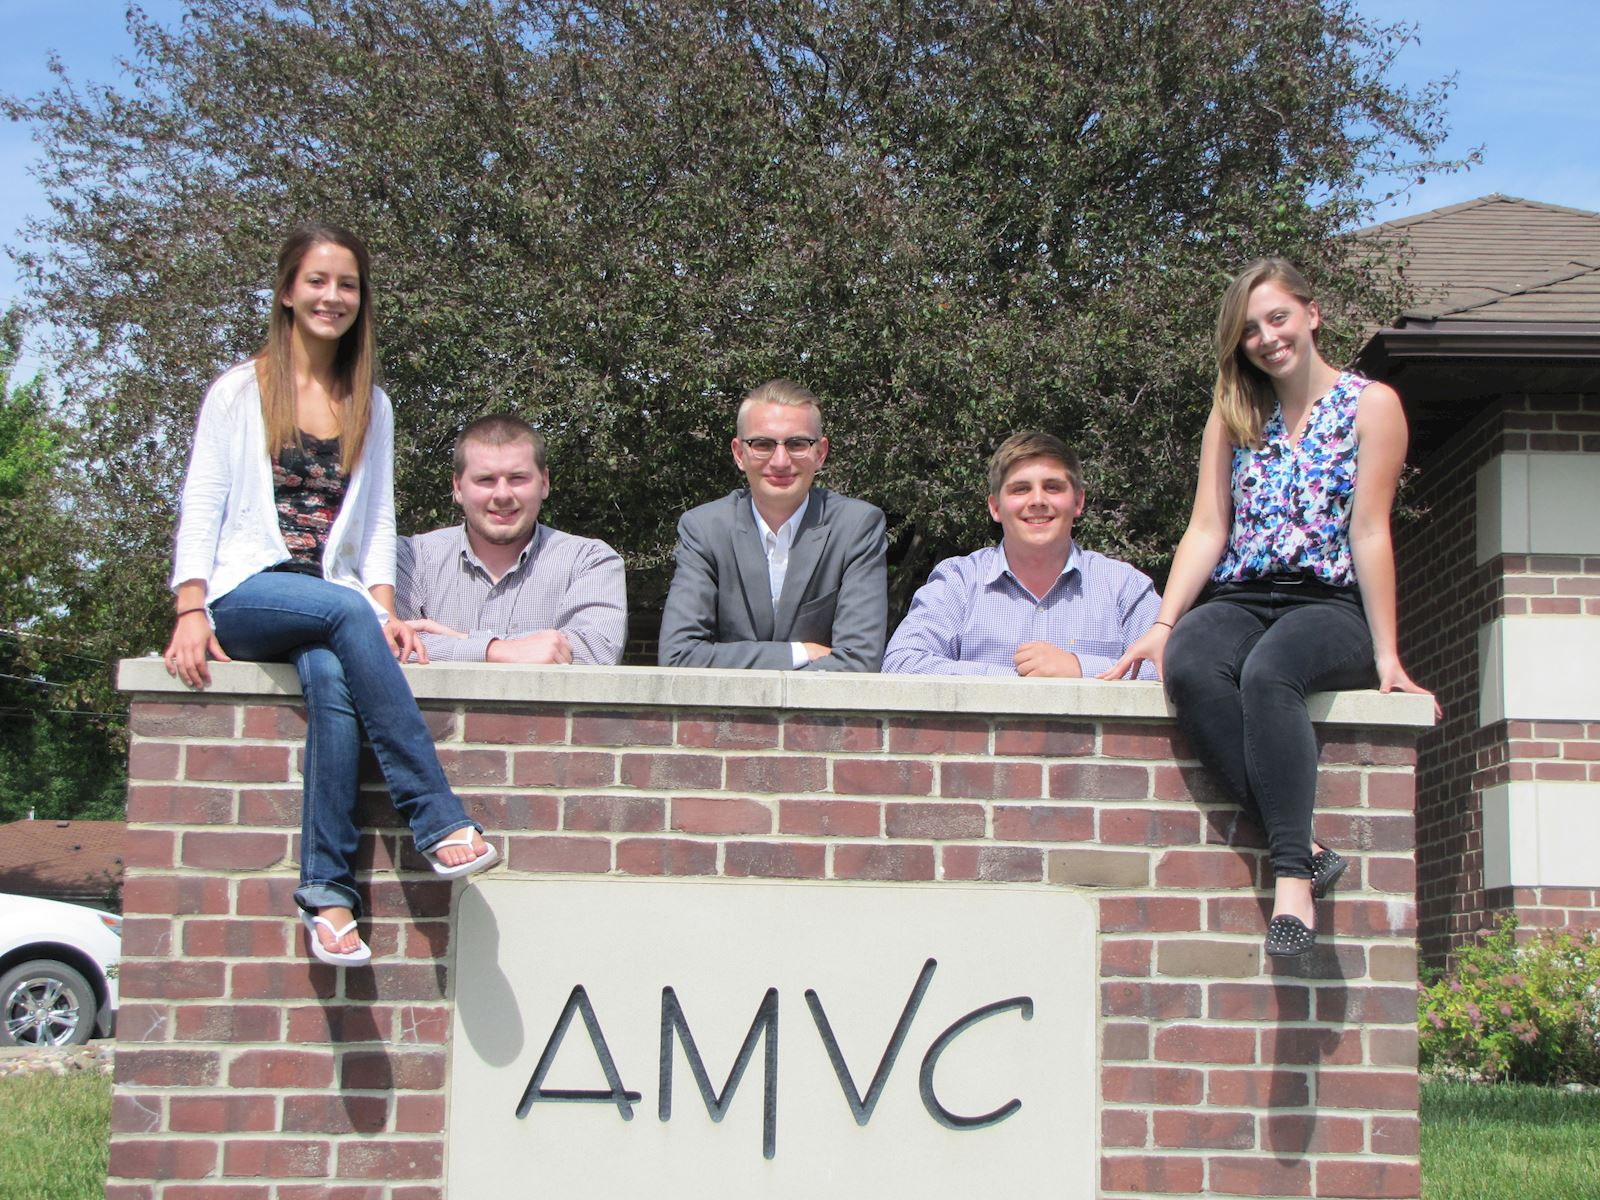 AMVC provides students with internship experience